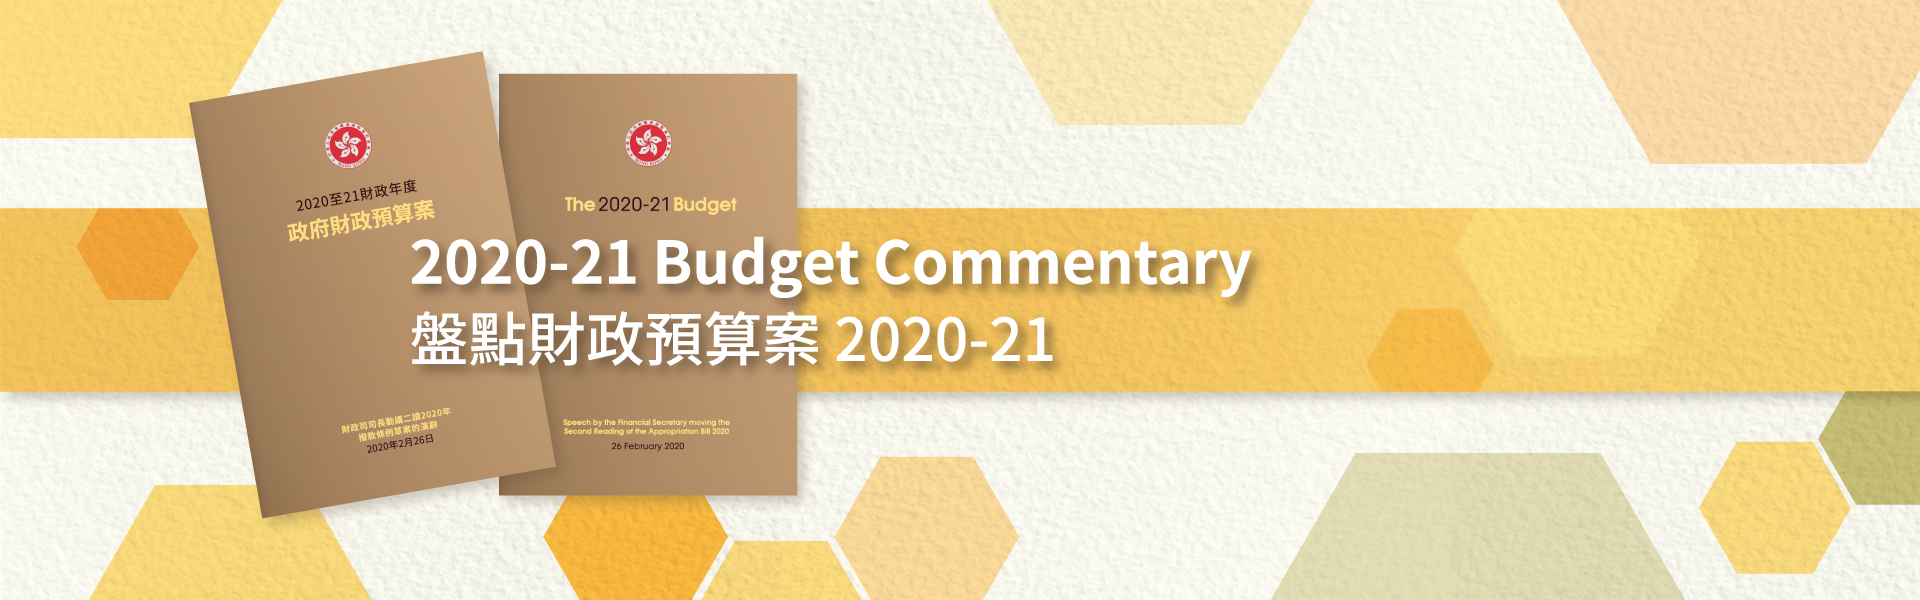 2020-21 Budget Commentary